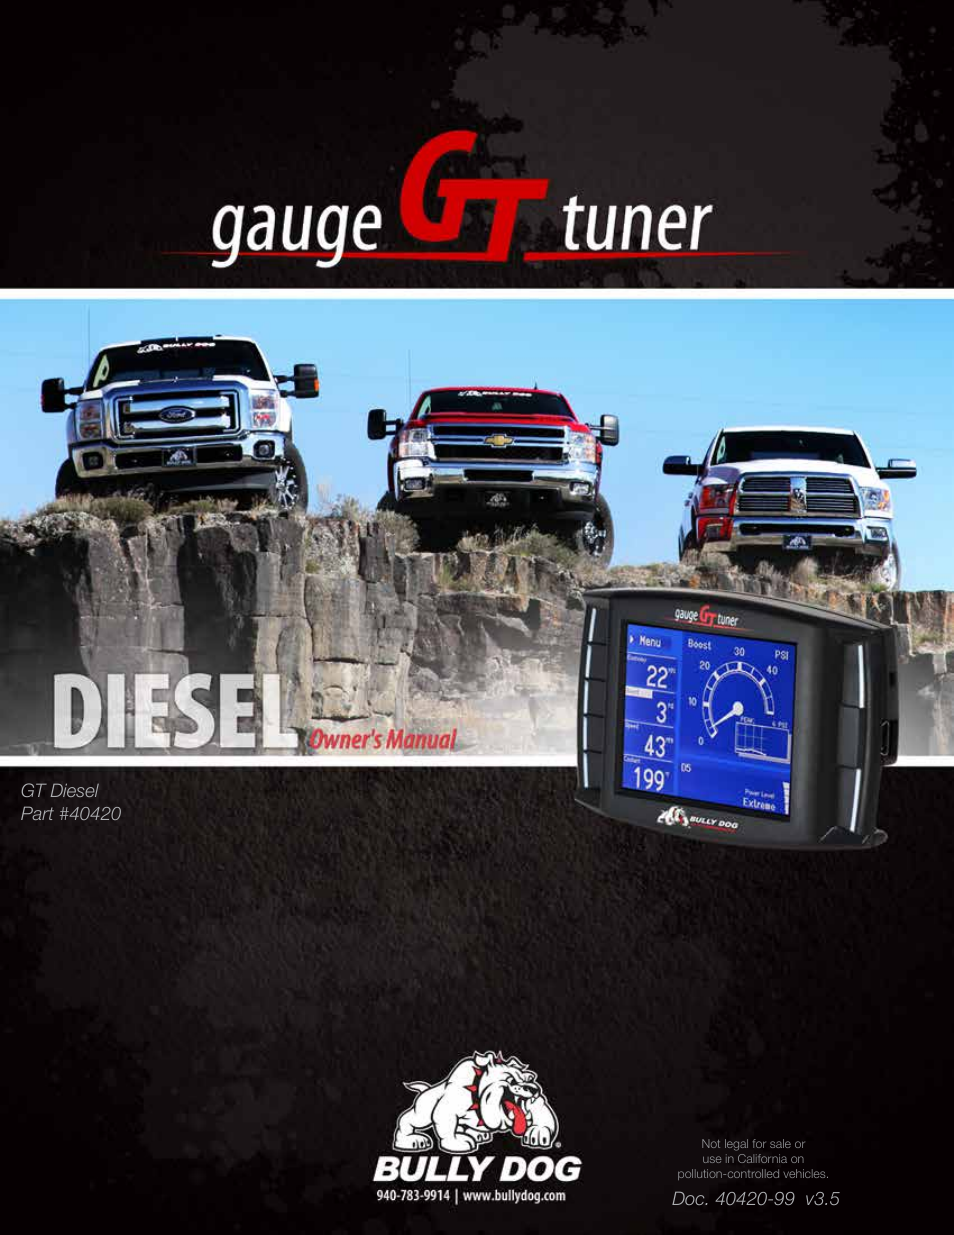 Bully Dog 40420 >> Bully Dog 40420 Gauge Gt Tuner User Manual 54 Pages